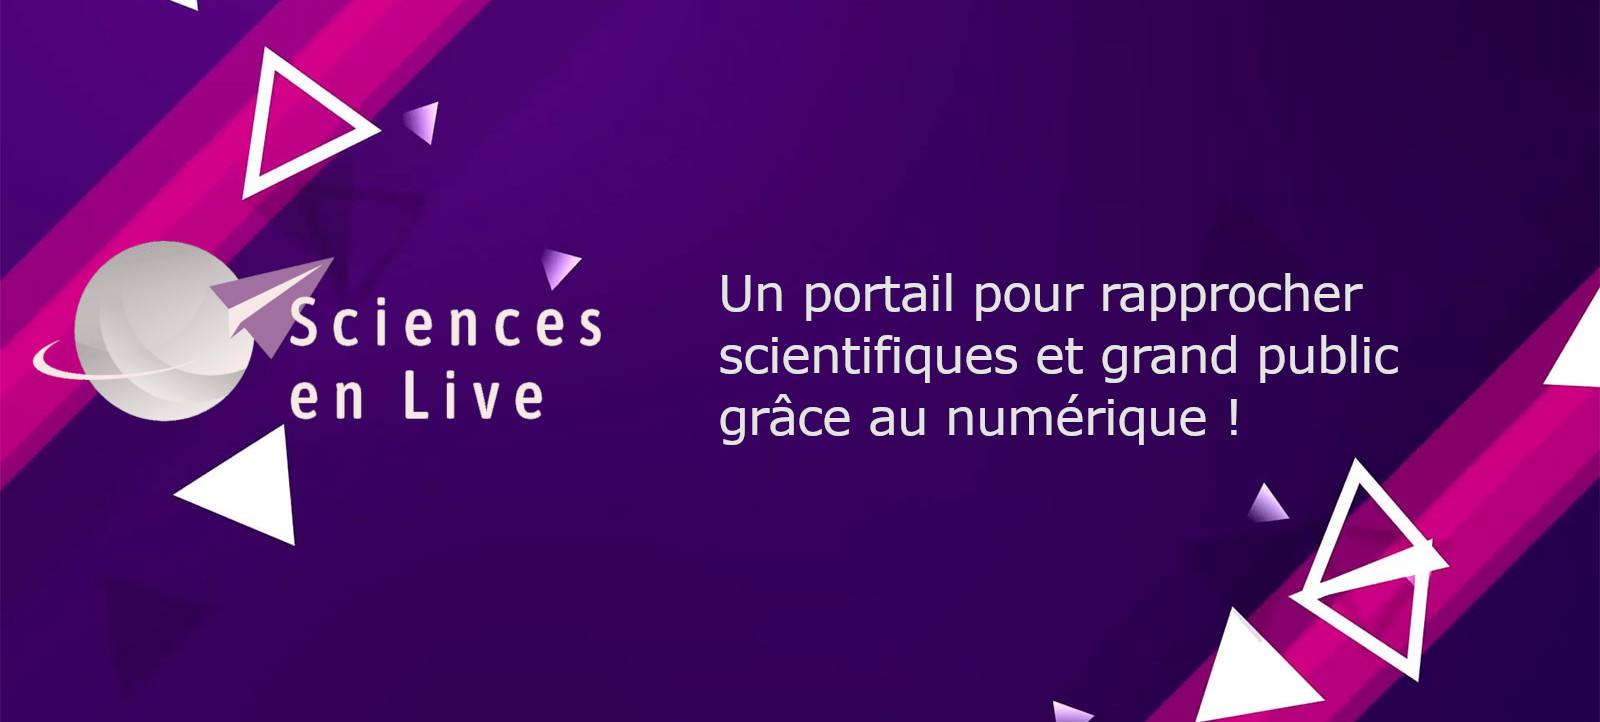 Sciences en Live